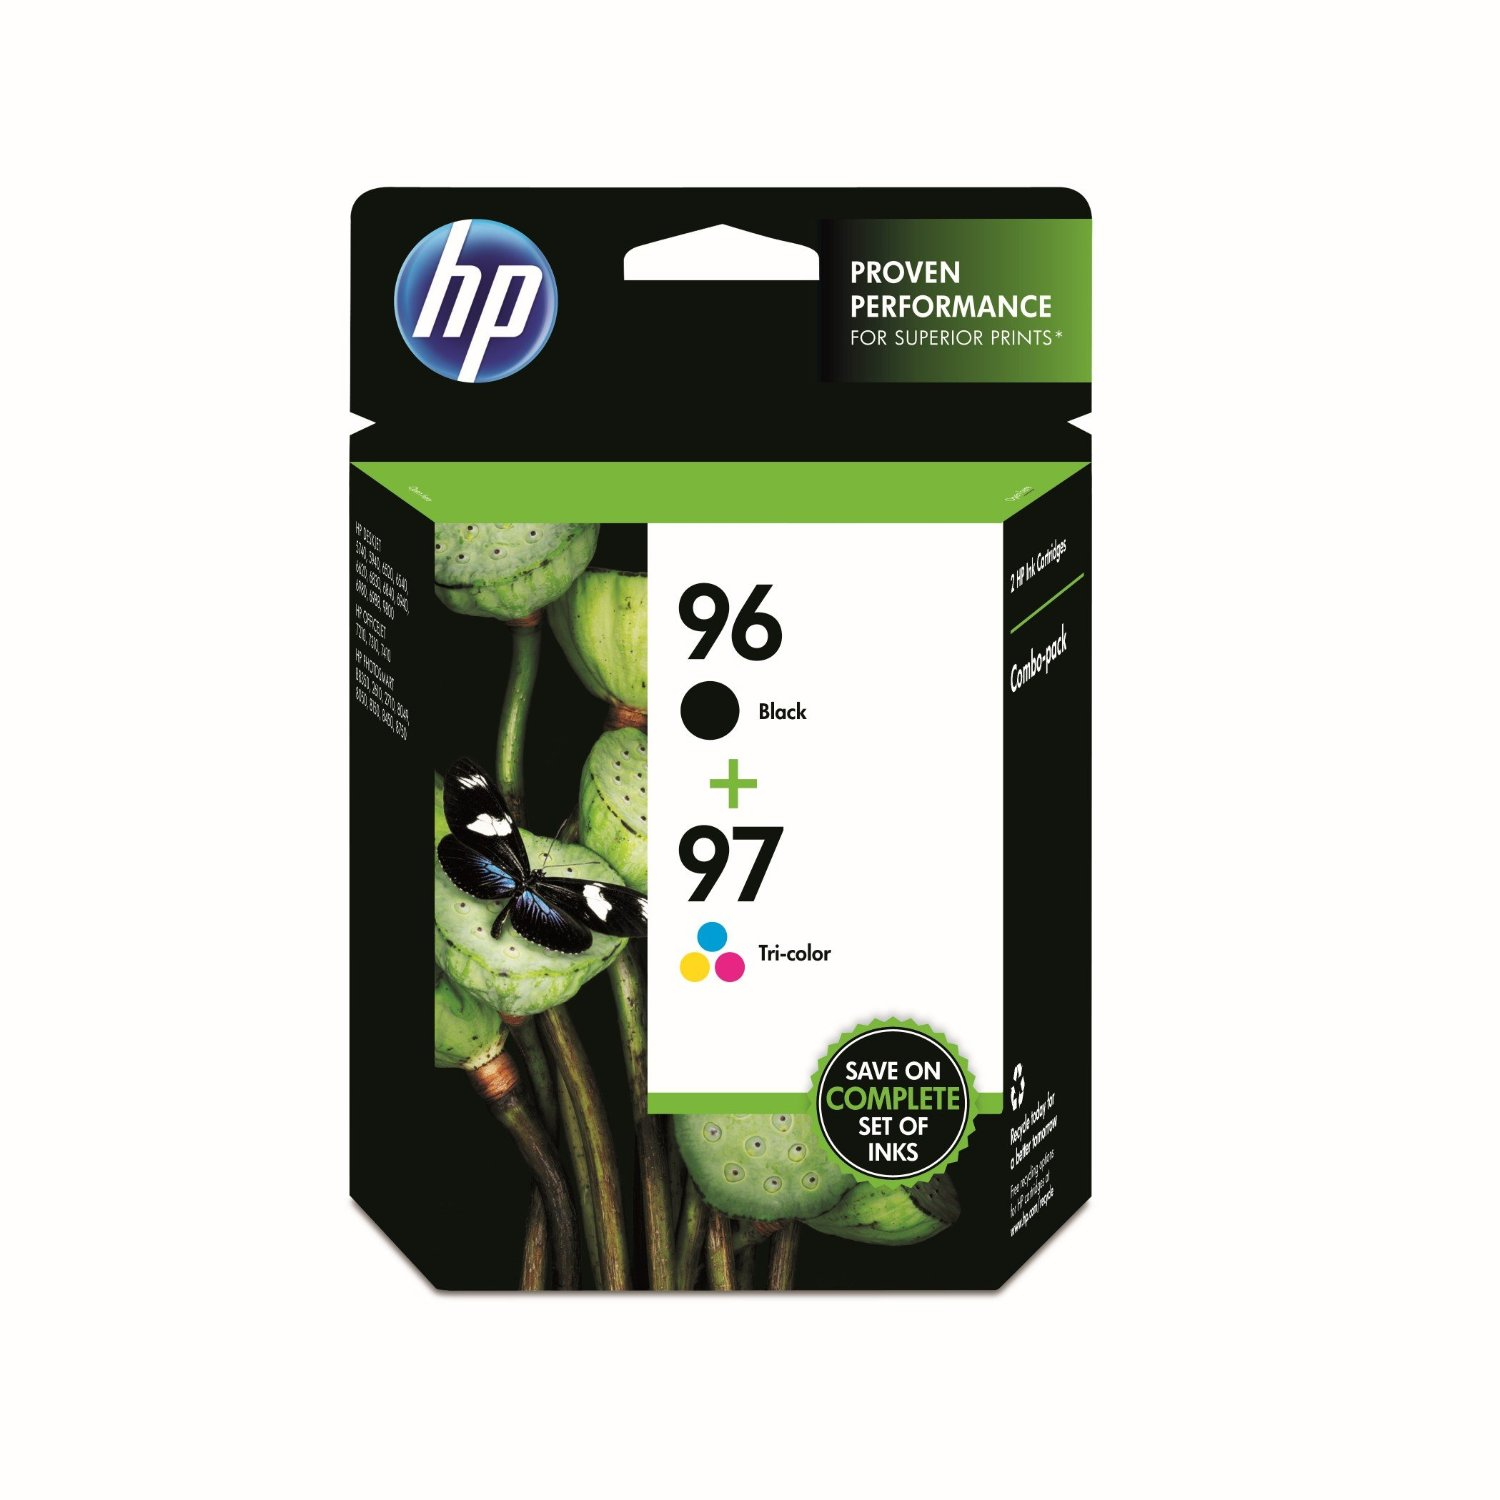 HP 96, HP 97 Black and Tricolor High Yield Ink Cartridges Combo C9353BN, C9353FN 2/Pack